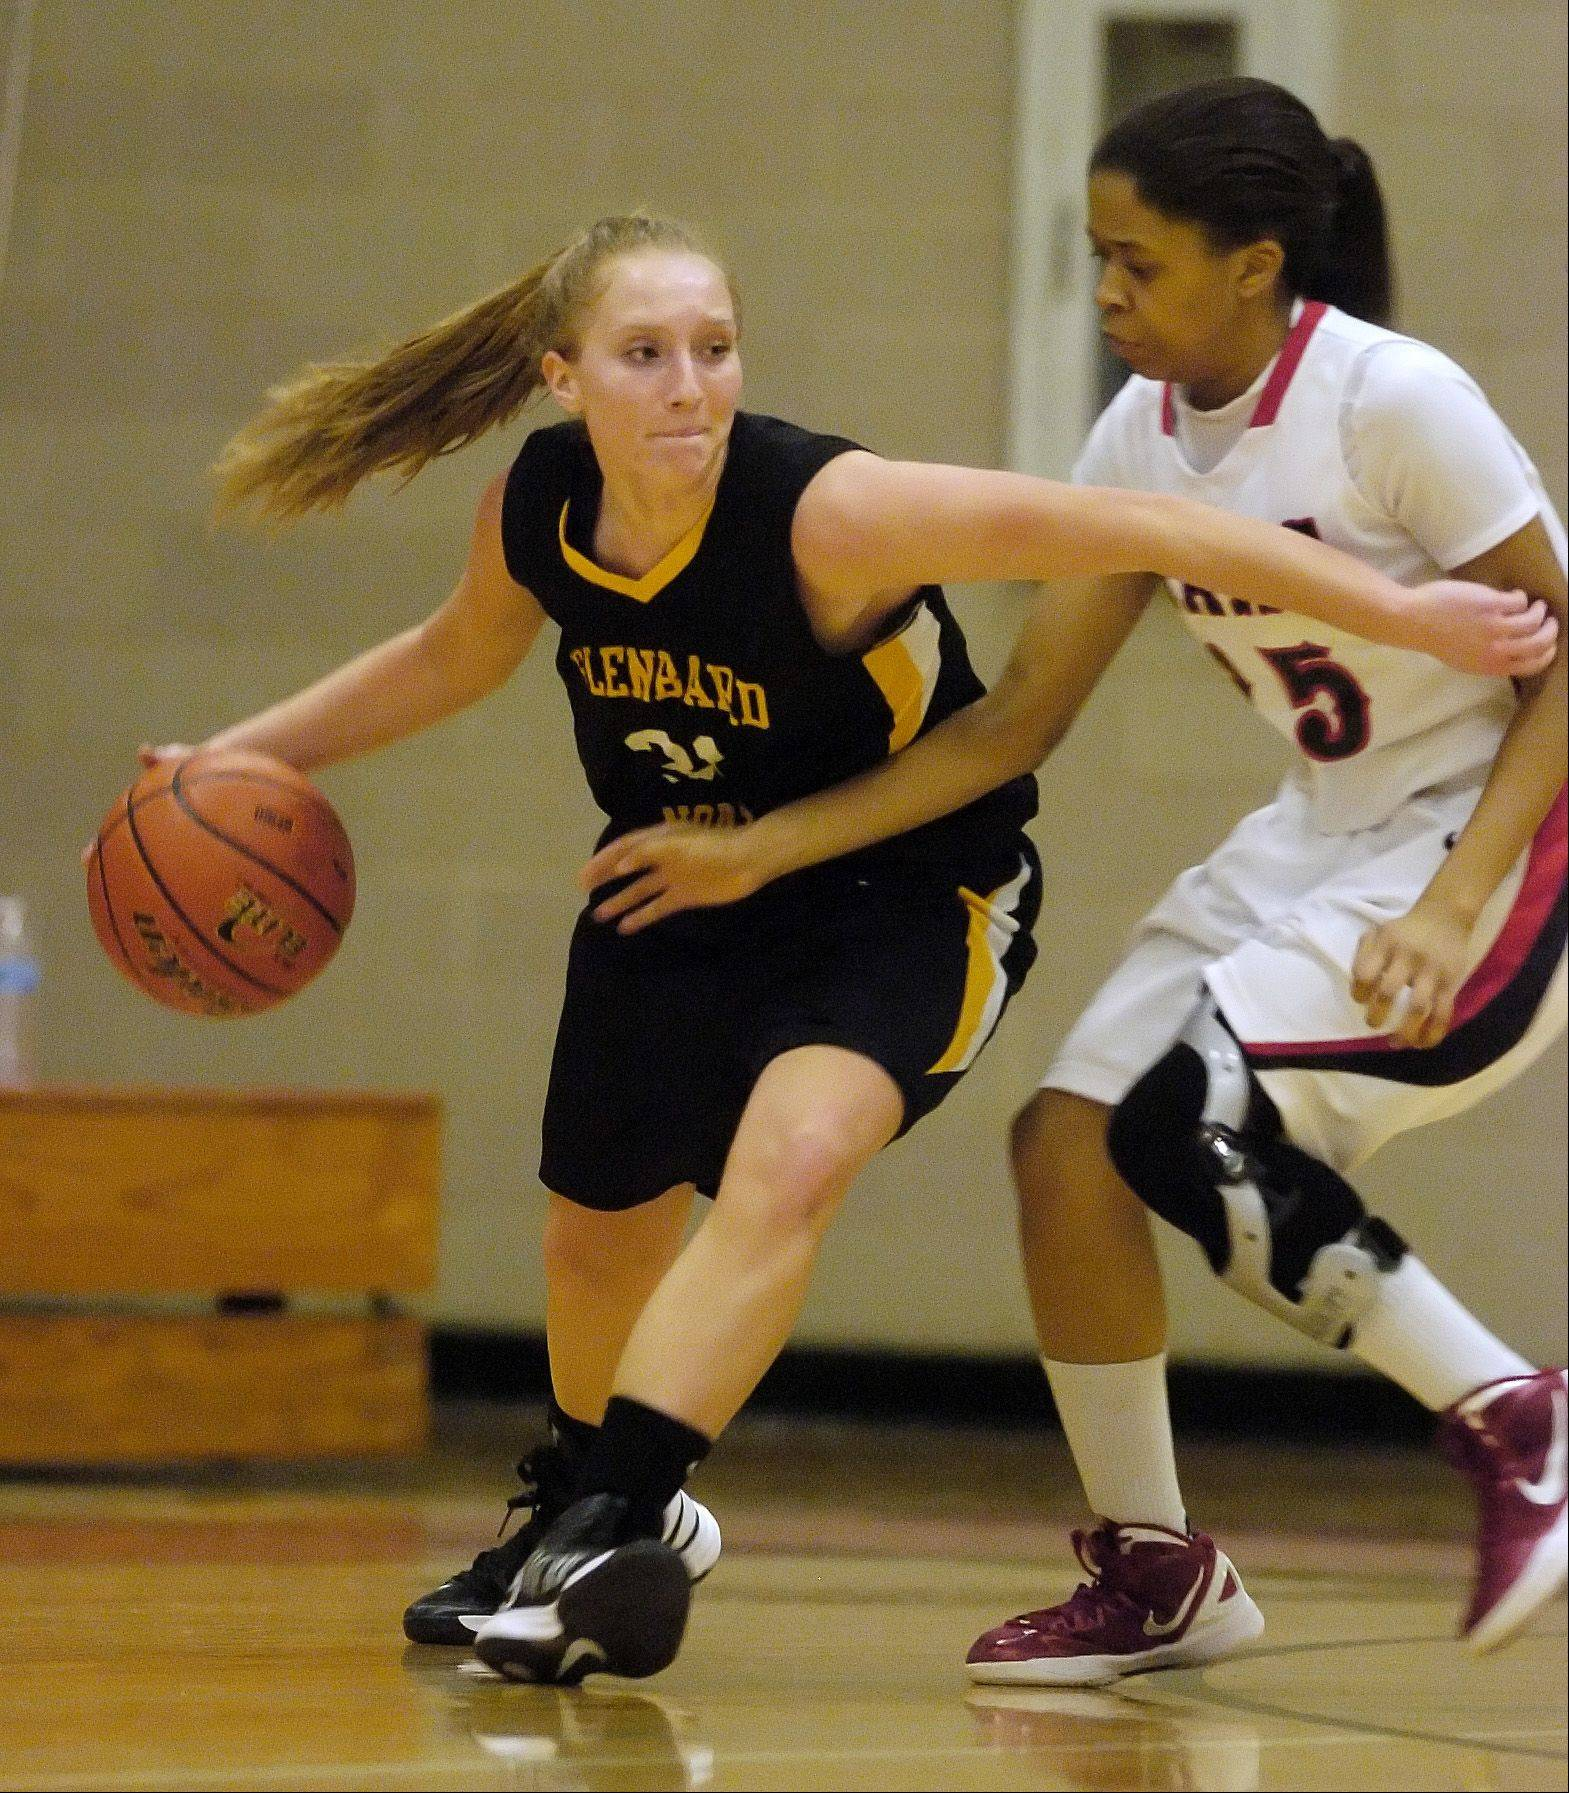 Amy Falson of Glenbard North works to get past Teaira Miller of Glenbard East.